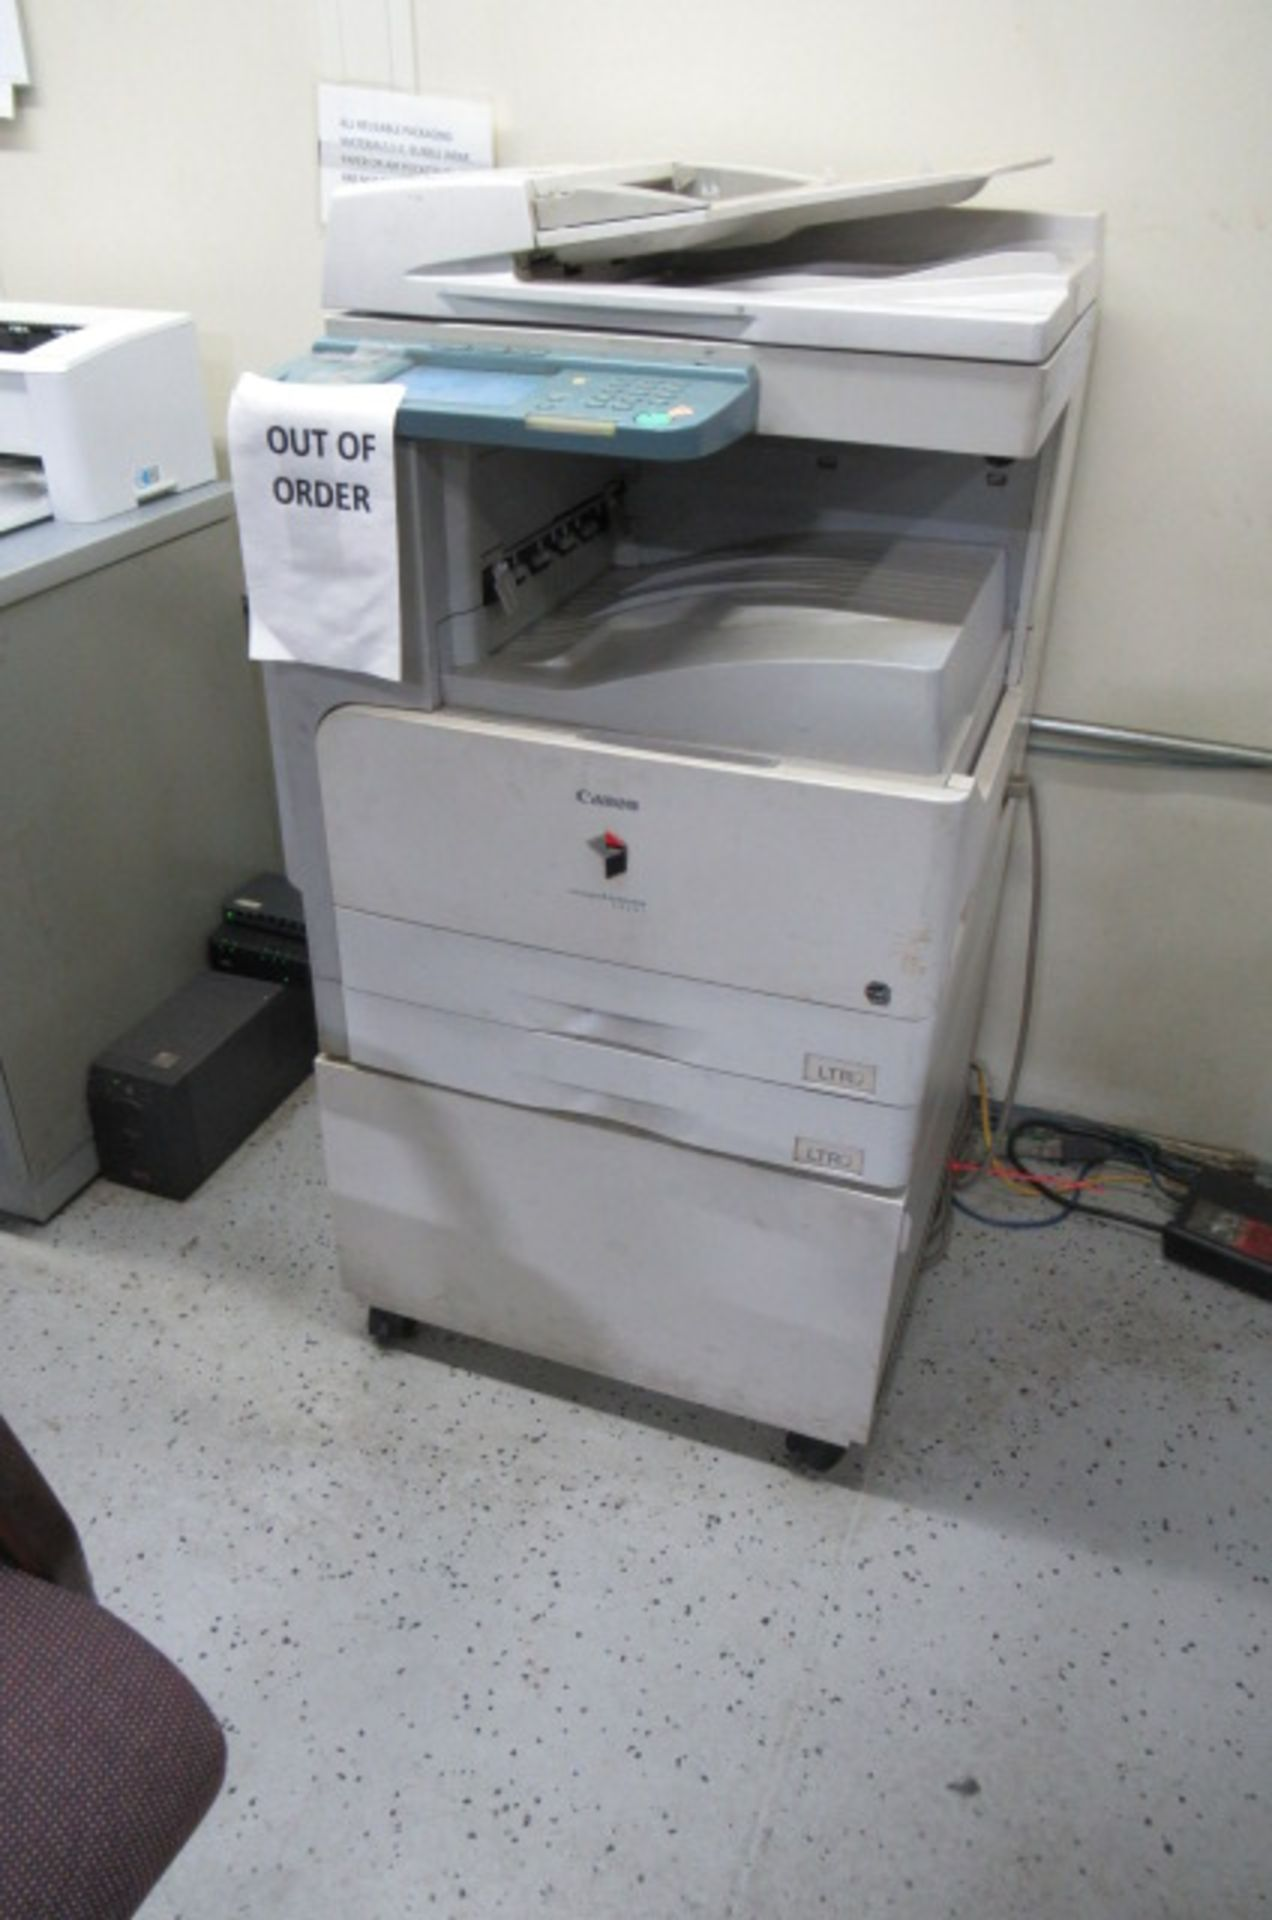 Shipping Area L shape Desk, File cabinet, Caning Copier, 2-sm tales, 3 Drawer Cabinet - Image 4 of 5